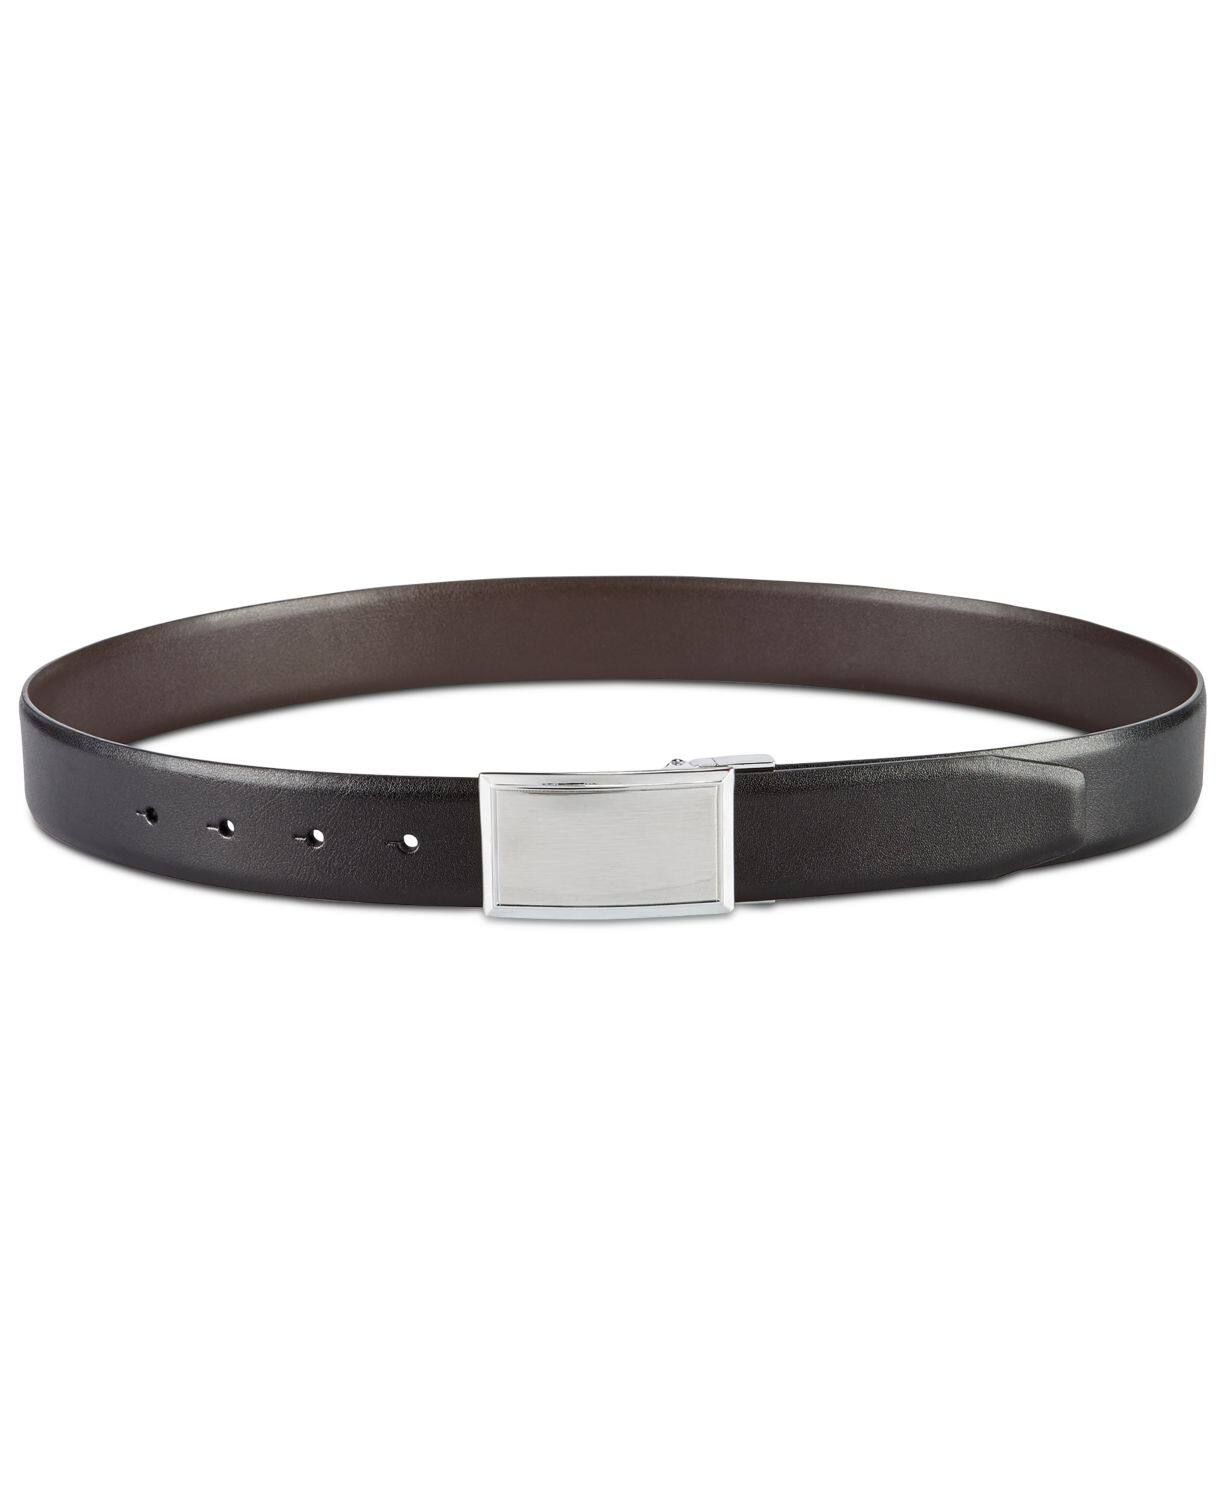 Perry Ellis Men's Shiny Leather Reversible Plaque Belt (Black) $8 & More at Macy's w/ Free Shipping on $25+